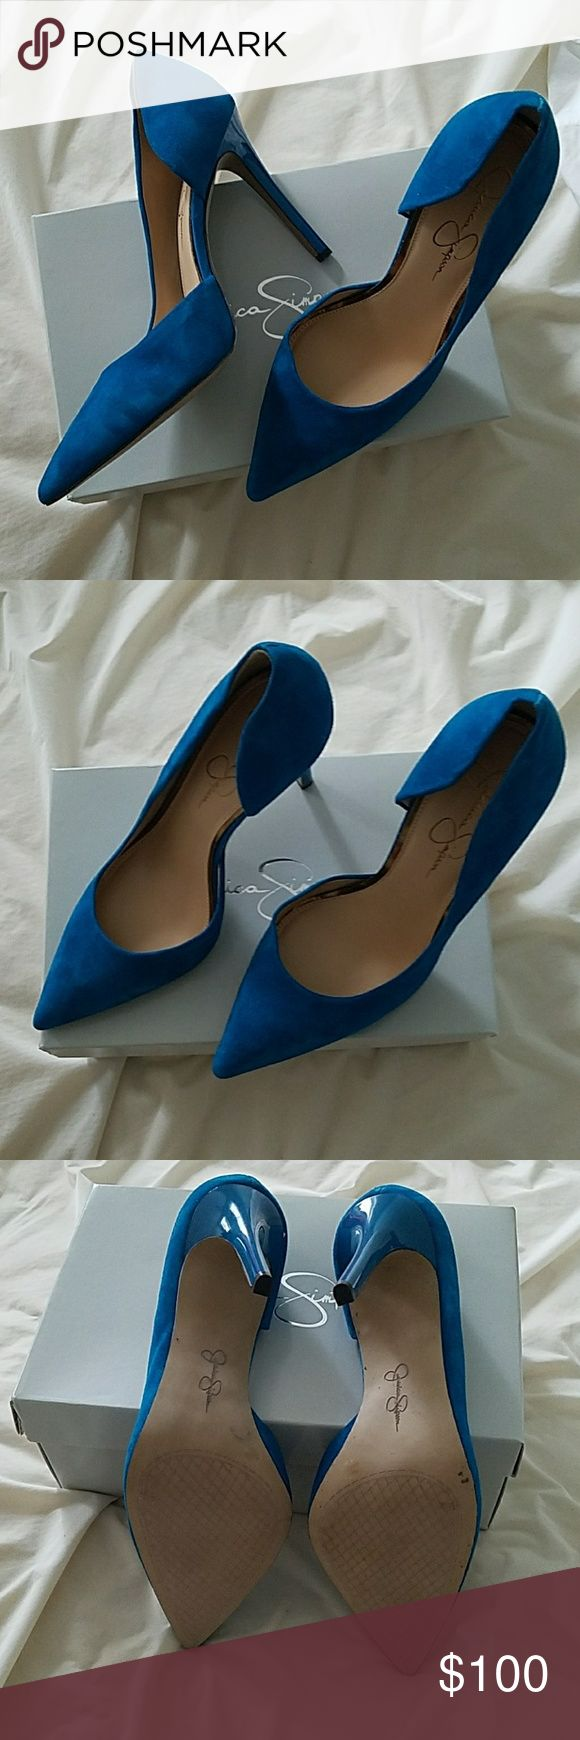 NWT Jessica Simpson Blue Suede Heels Jessica Simpson blue suede heels. Never worn! I bought them with no idea what I would wear them with, and after a couple of years, I haven't worn them once. They are a gorgeous royal blue, pointed toe, with a 3-4 inch heel. Still in the box (except for pics). These would be stunning with a simple black dress, or even dress them down with jeans and a plain tshirt! Jessica Simpson Shoes Heels